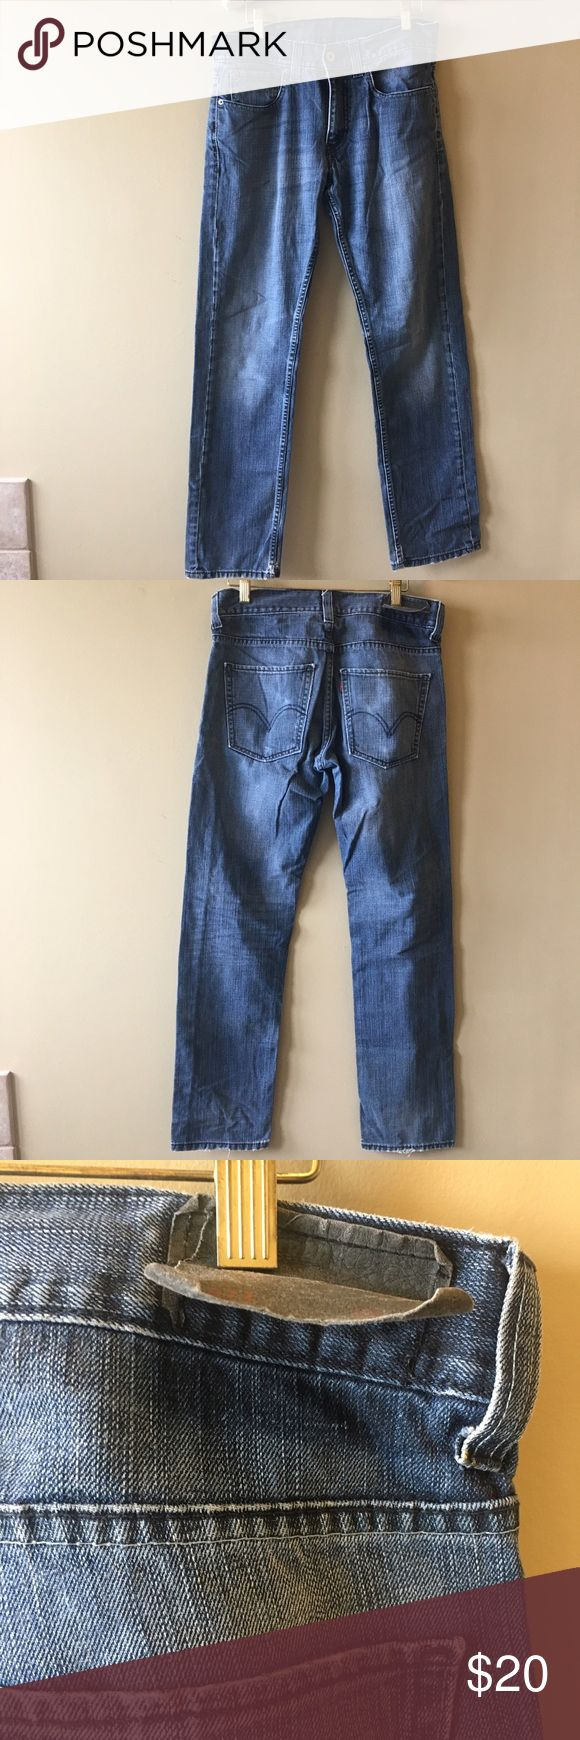 Levi's skinny 511 jeans 32x33 Great condition, some minor wear in the seat. Tag is lifting in the back. Add this to a bundle to save 15%. Levi's Jeans Skinny